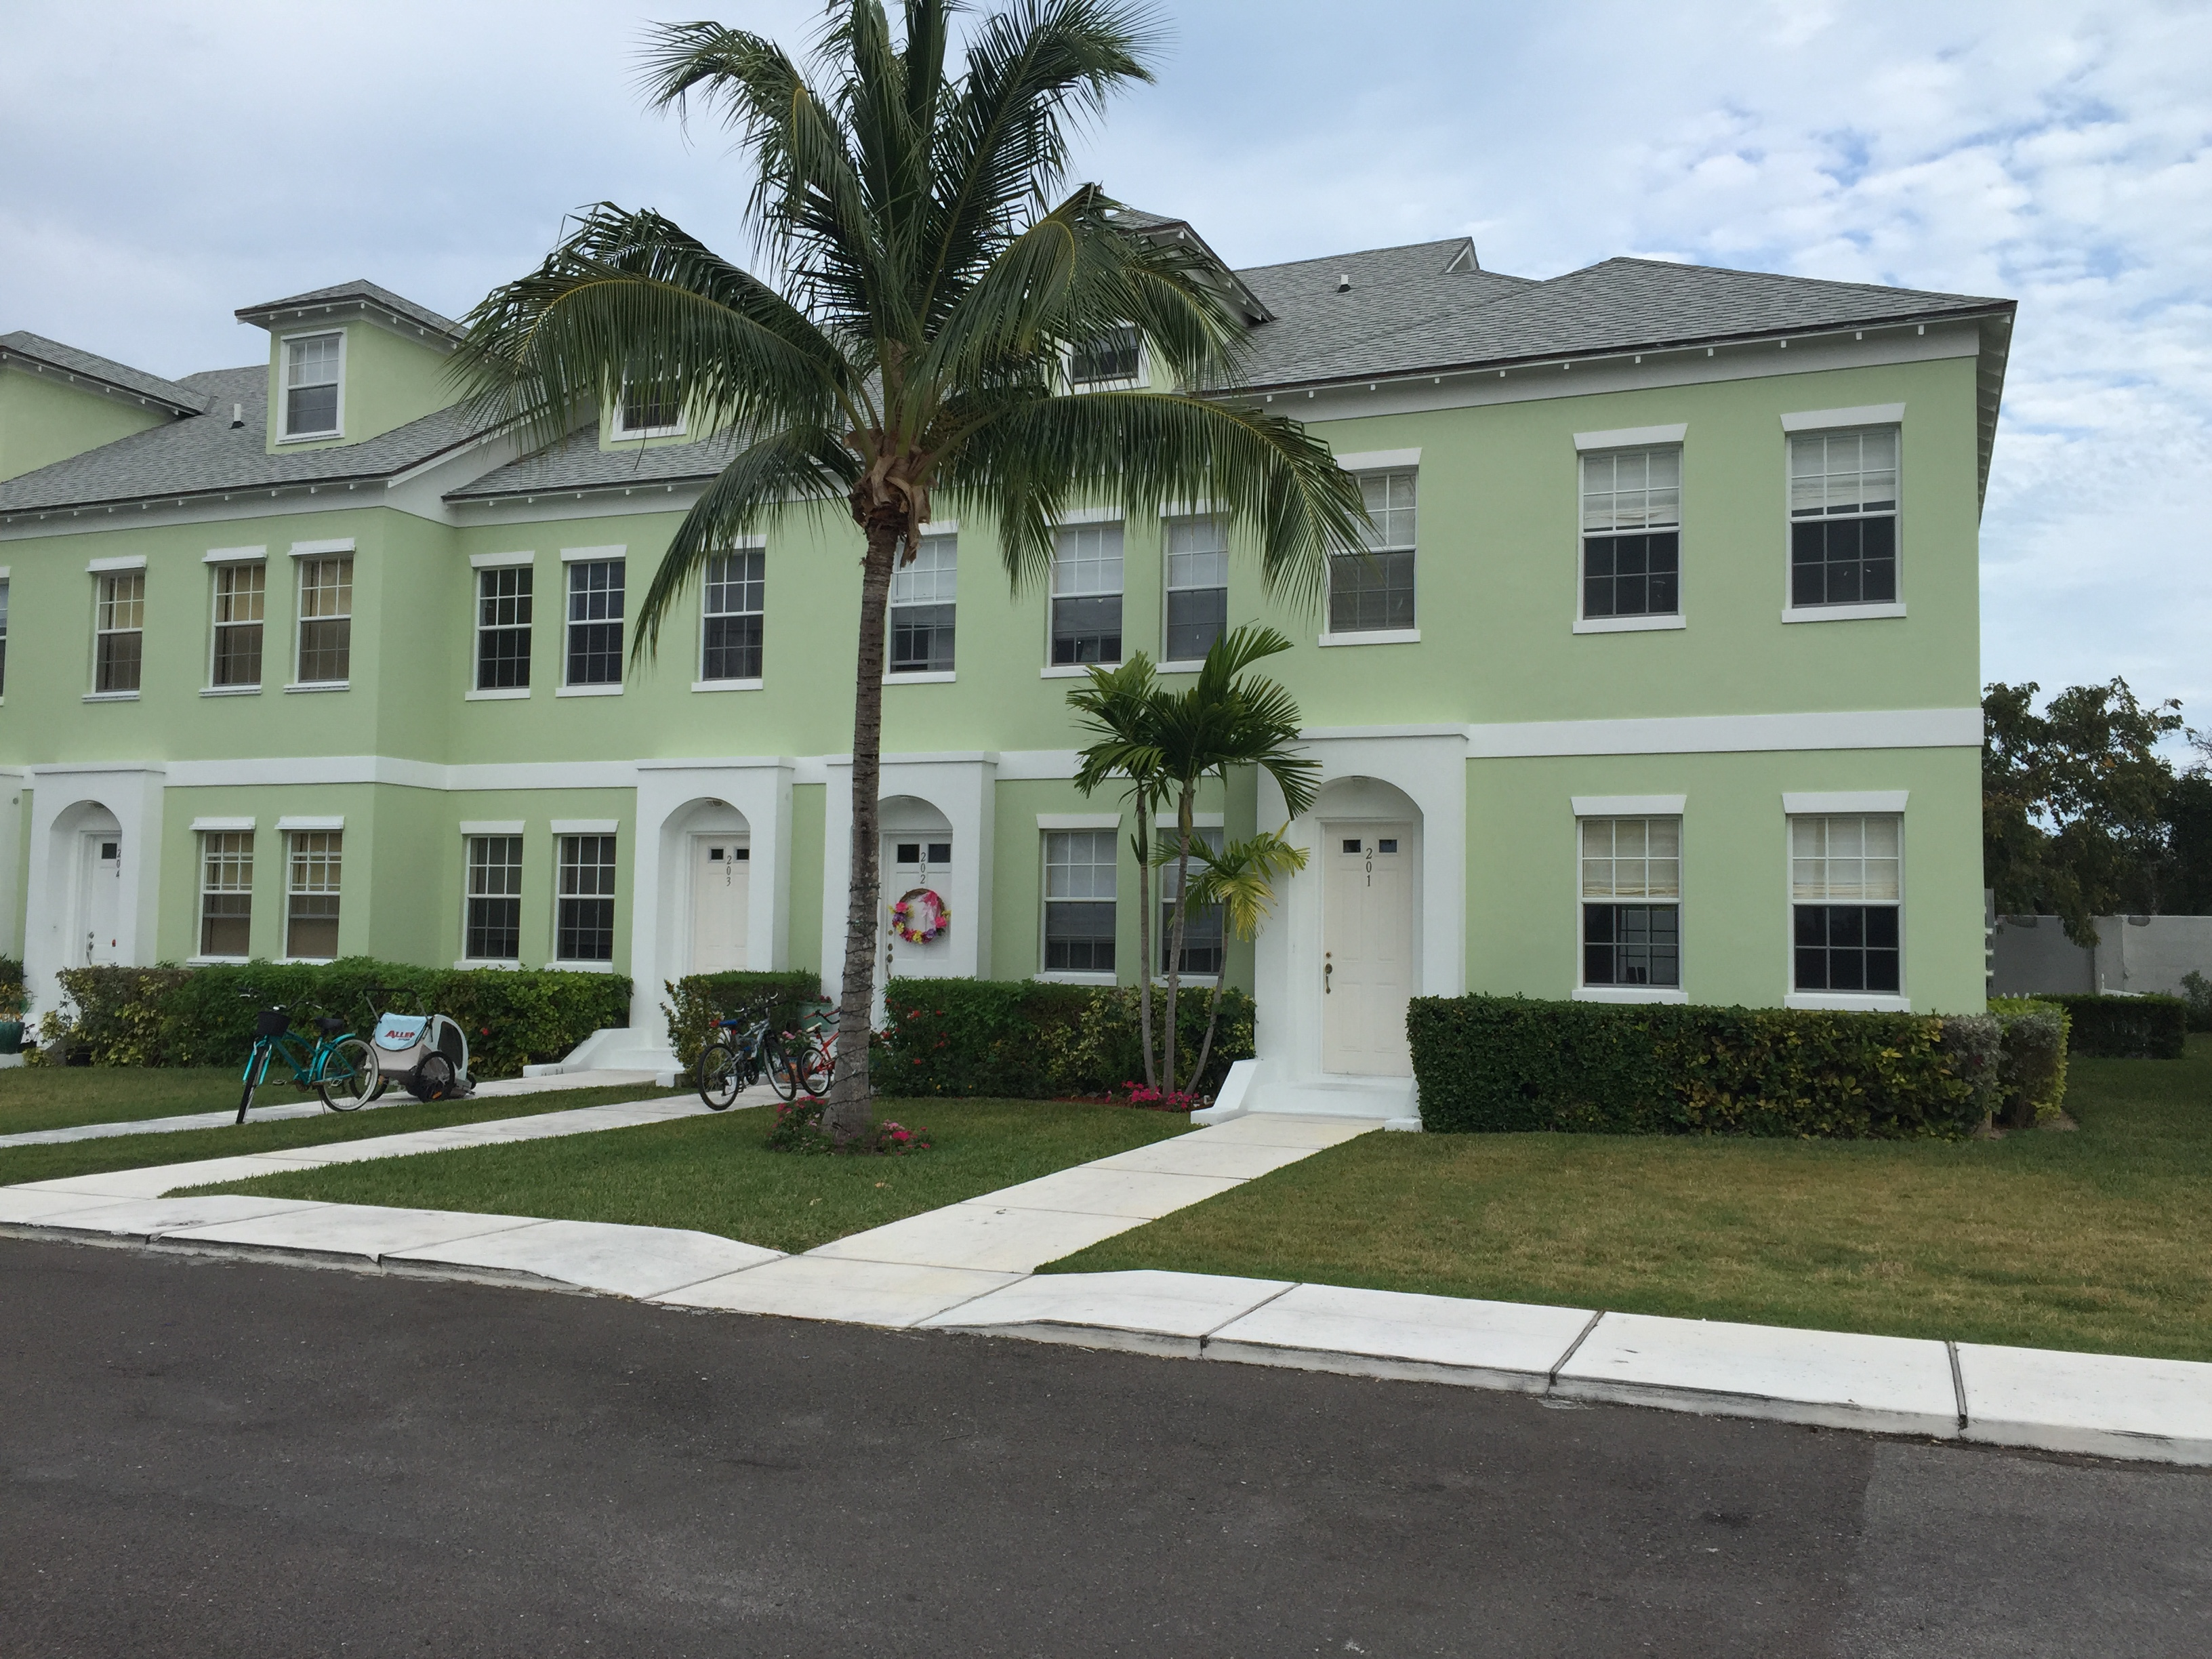 the garden townhomes, palm cay